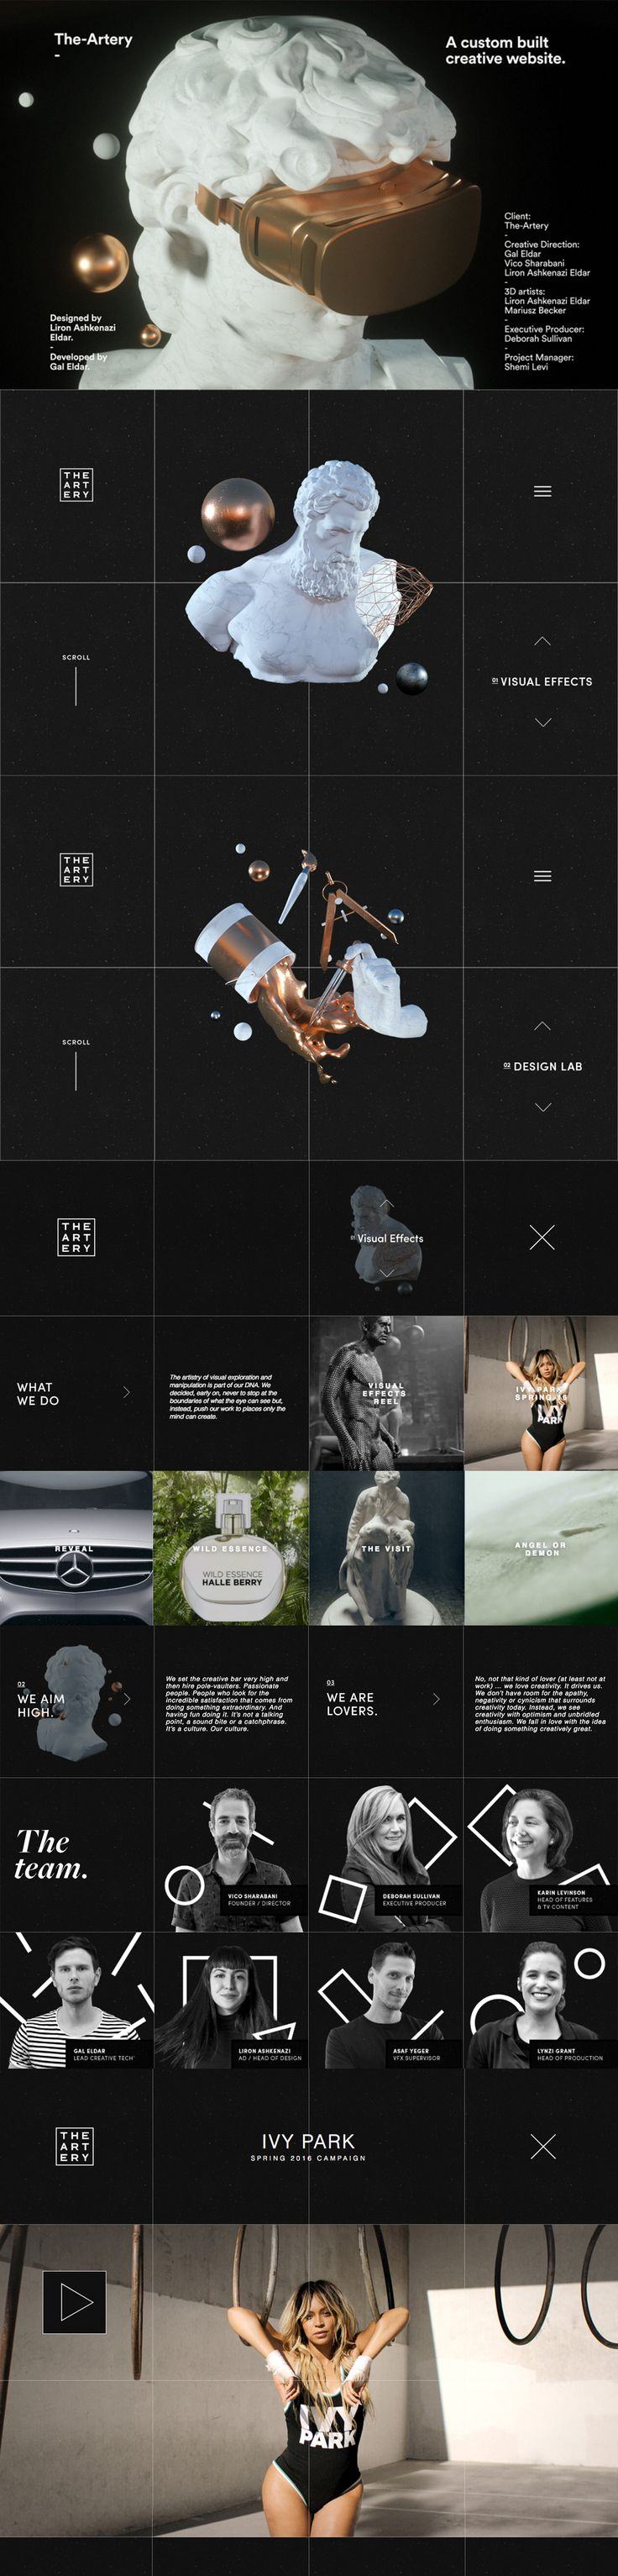 Site of the day: The Artery See more: http://mindsparklemag.com/website/the-artery/  The Artery is a beautifully designed site that is featured as Site of the Day on design blog, Mindsparkle Mag